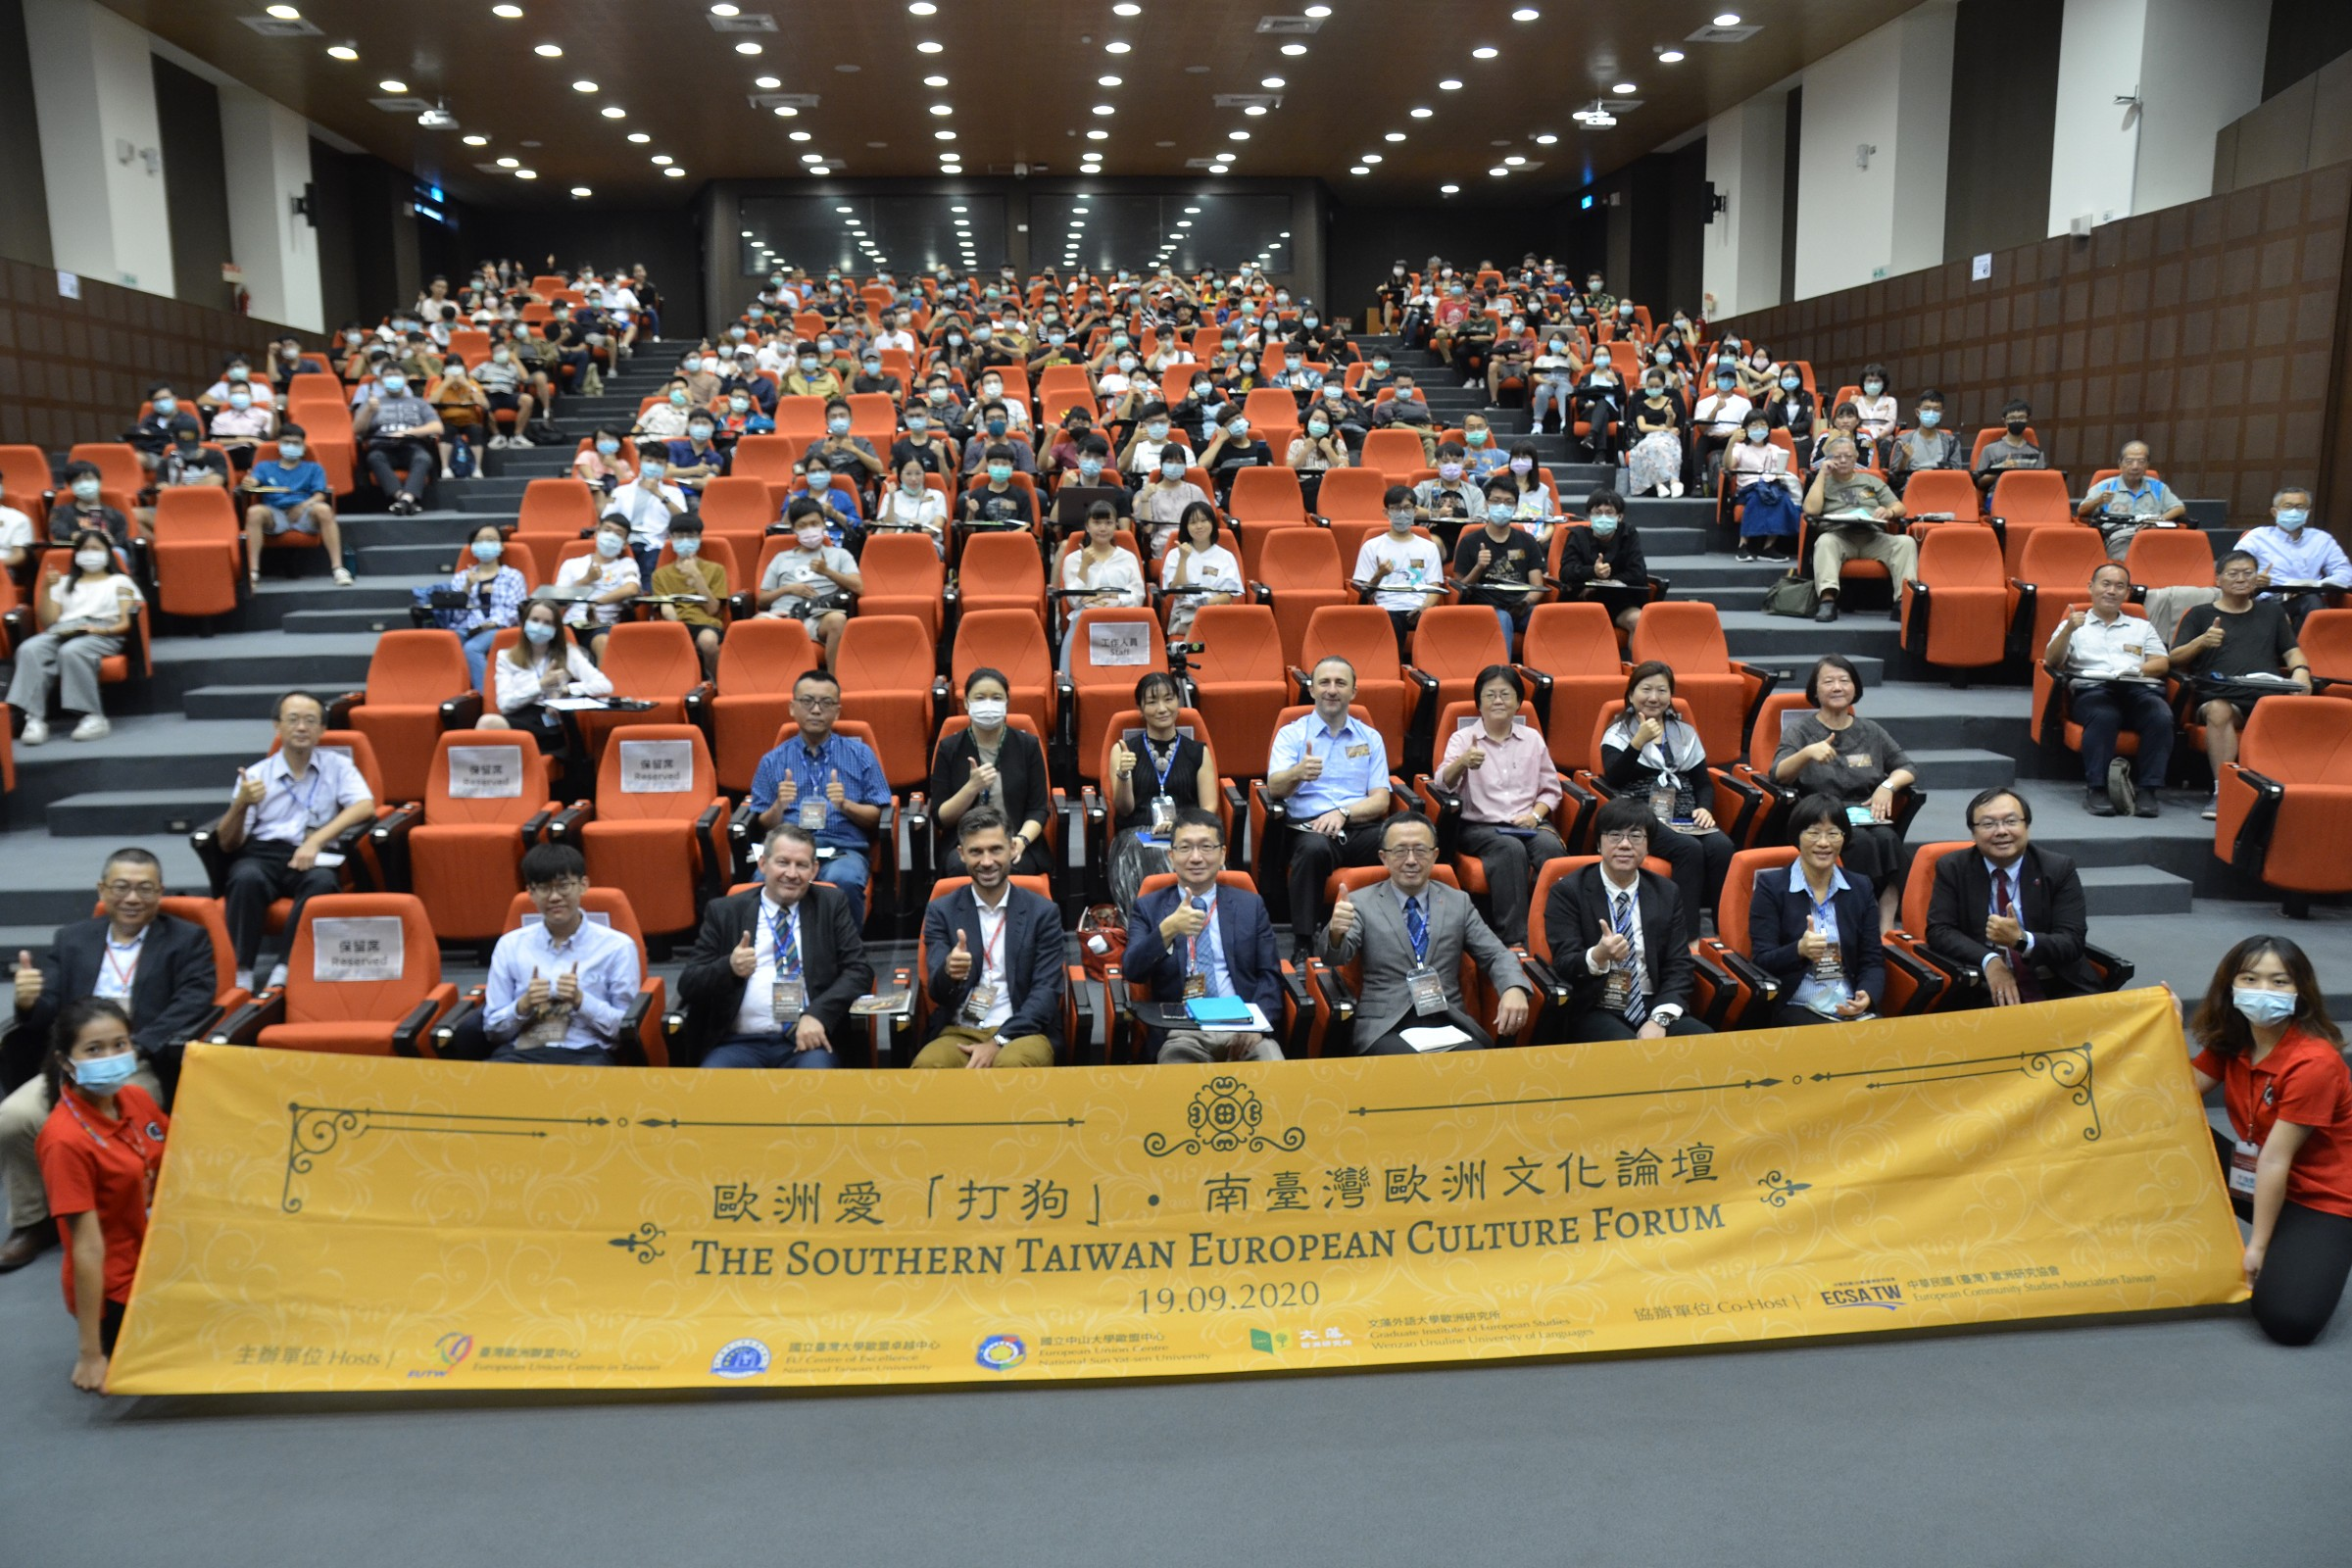 European Union Center organizes The Southern Taiwan European Culture Forum to share urban development trends, arts, and lifestyle in Europe